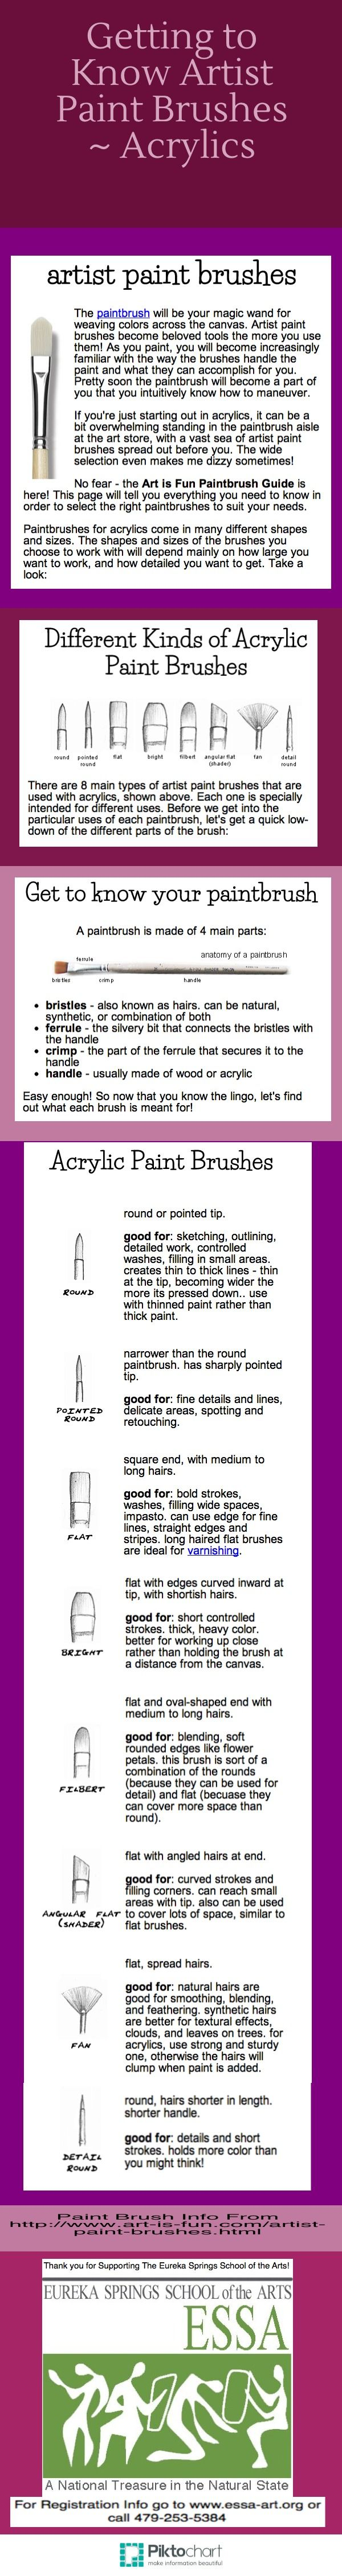 Folk art acrylic paint color chart - Great Tips On Getting To Know Acrylic Paint Brushes From Http Www